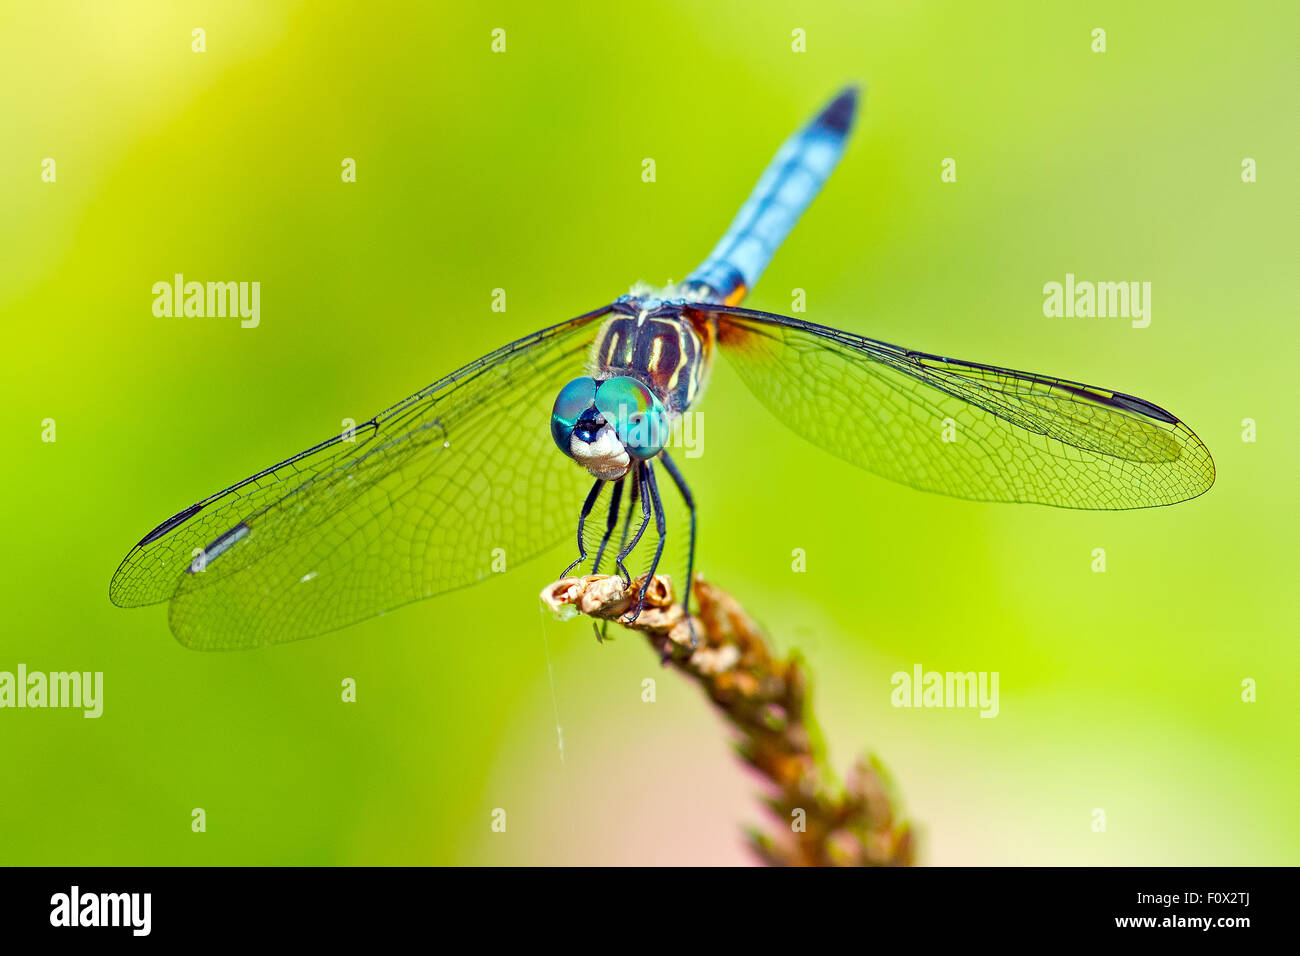 Blue Dasher Dragonfly - Stock Image